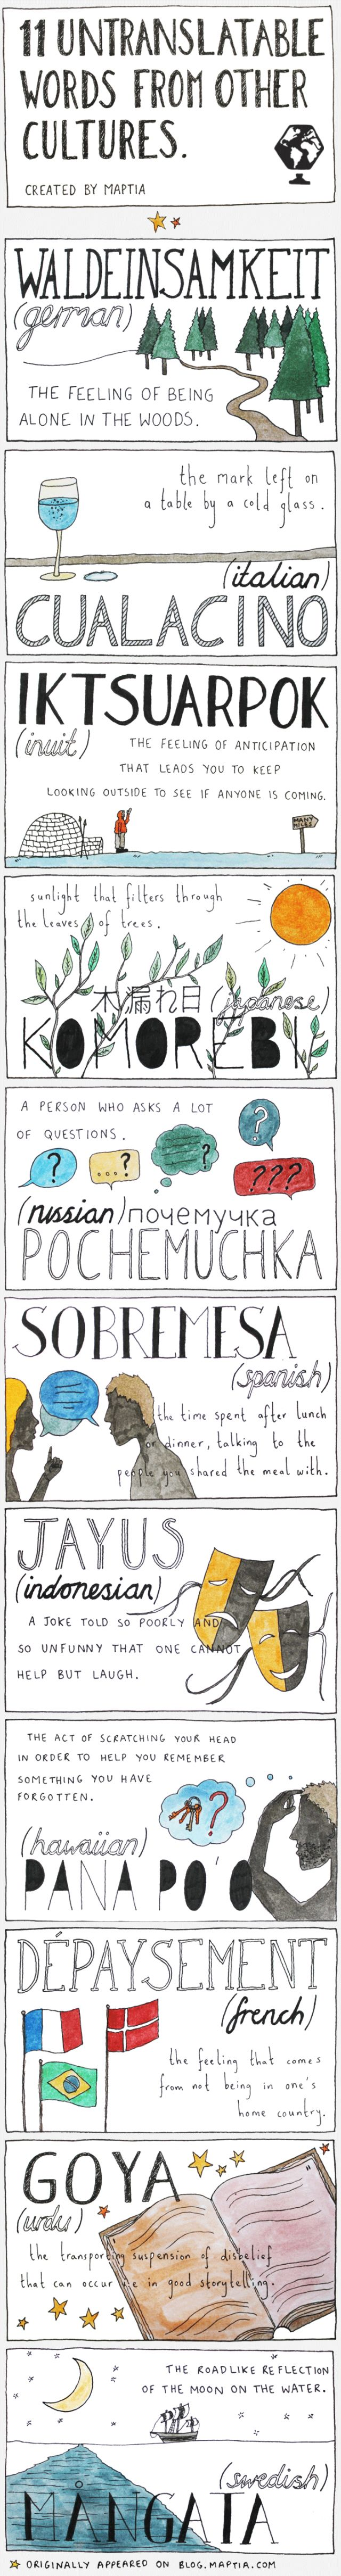 11-untranslatable-words-from-other-cultures_  Use as a writing warm up. Have students create words for things and feelings not captured by the English language.